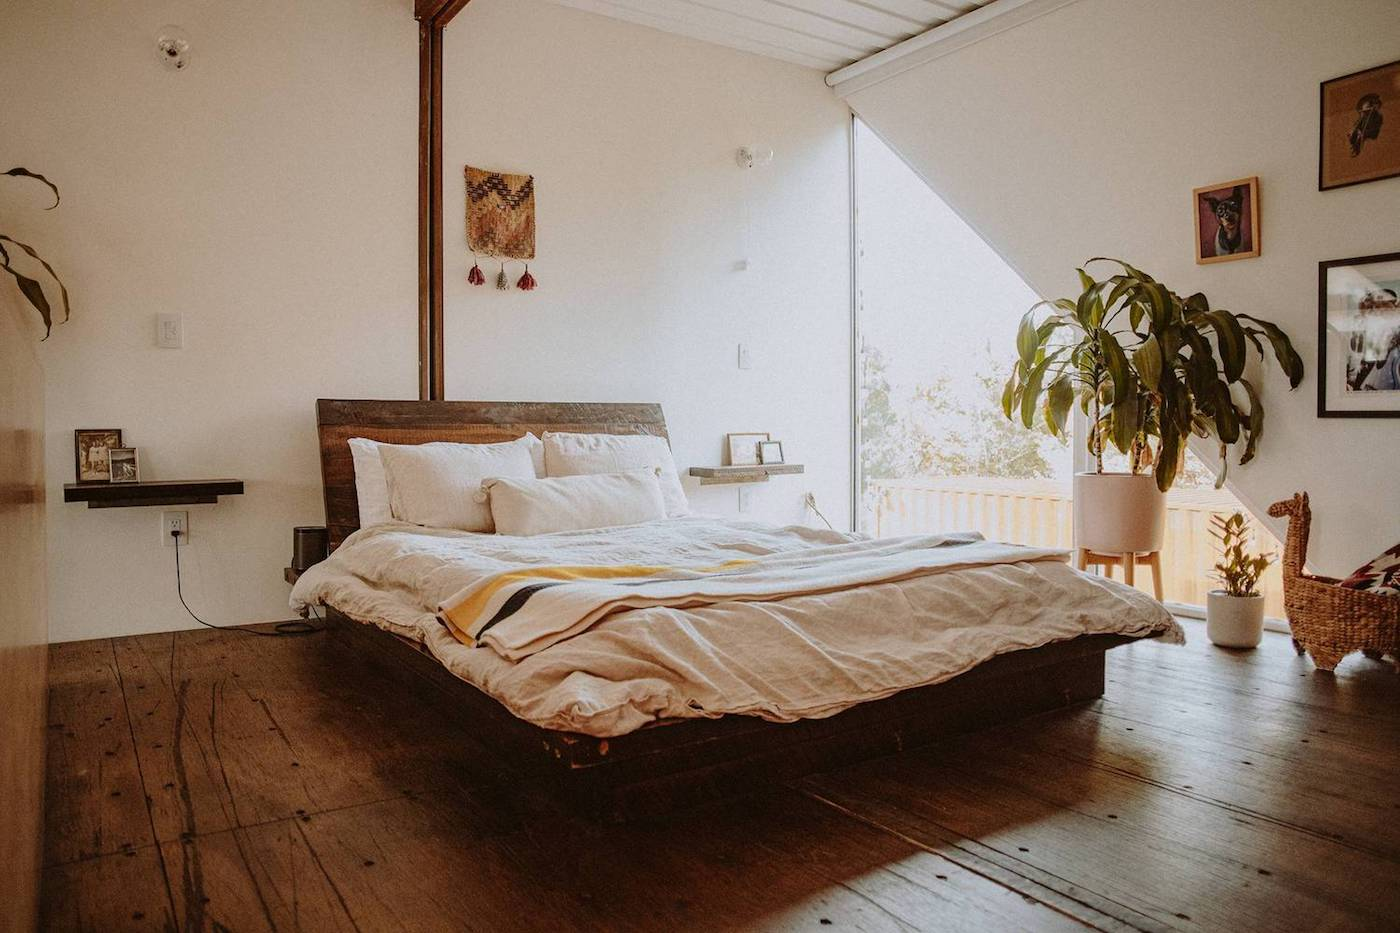 Bedroom with timber flooring